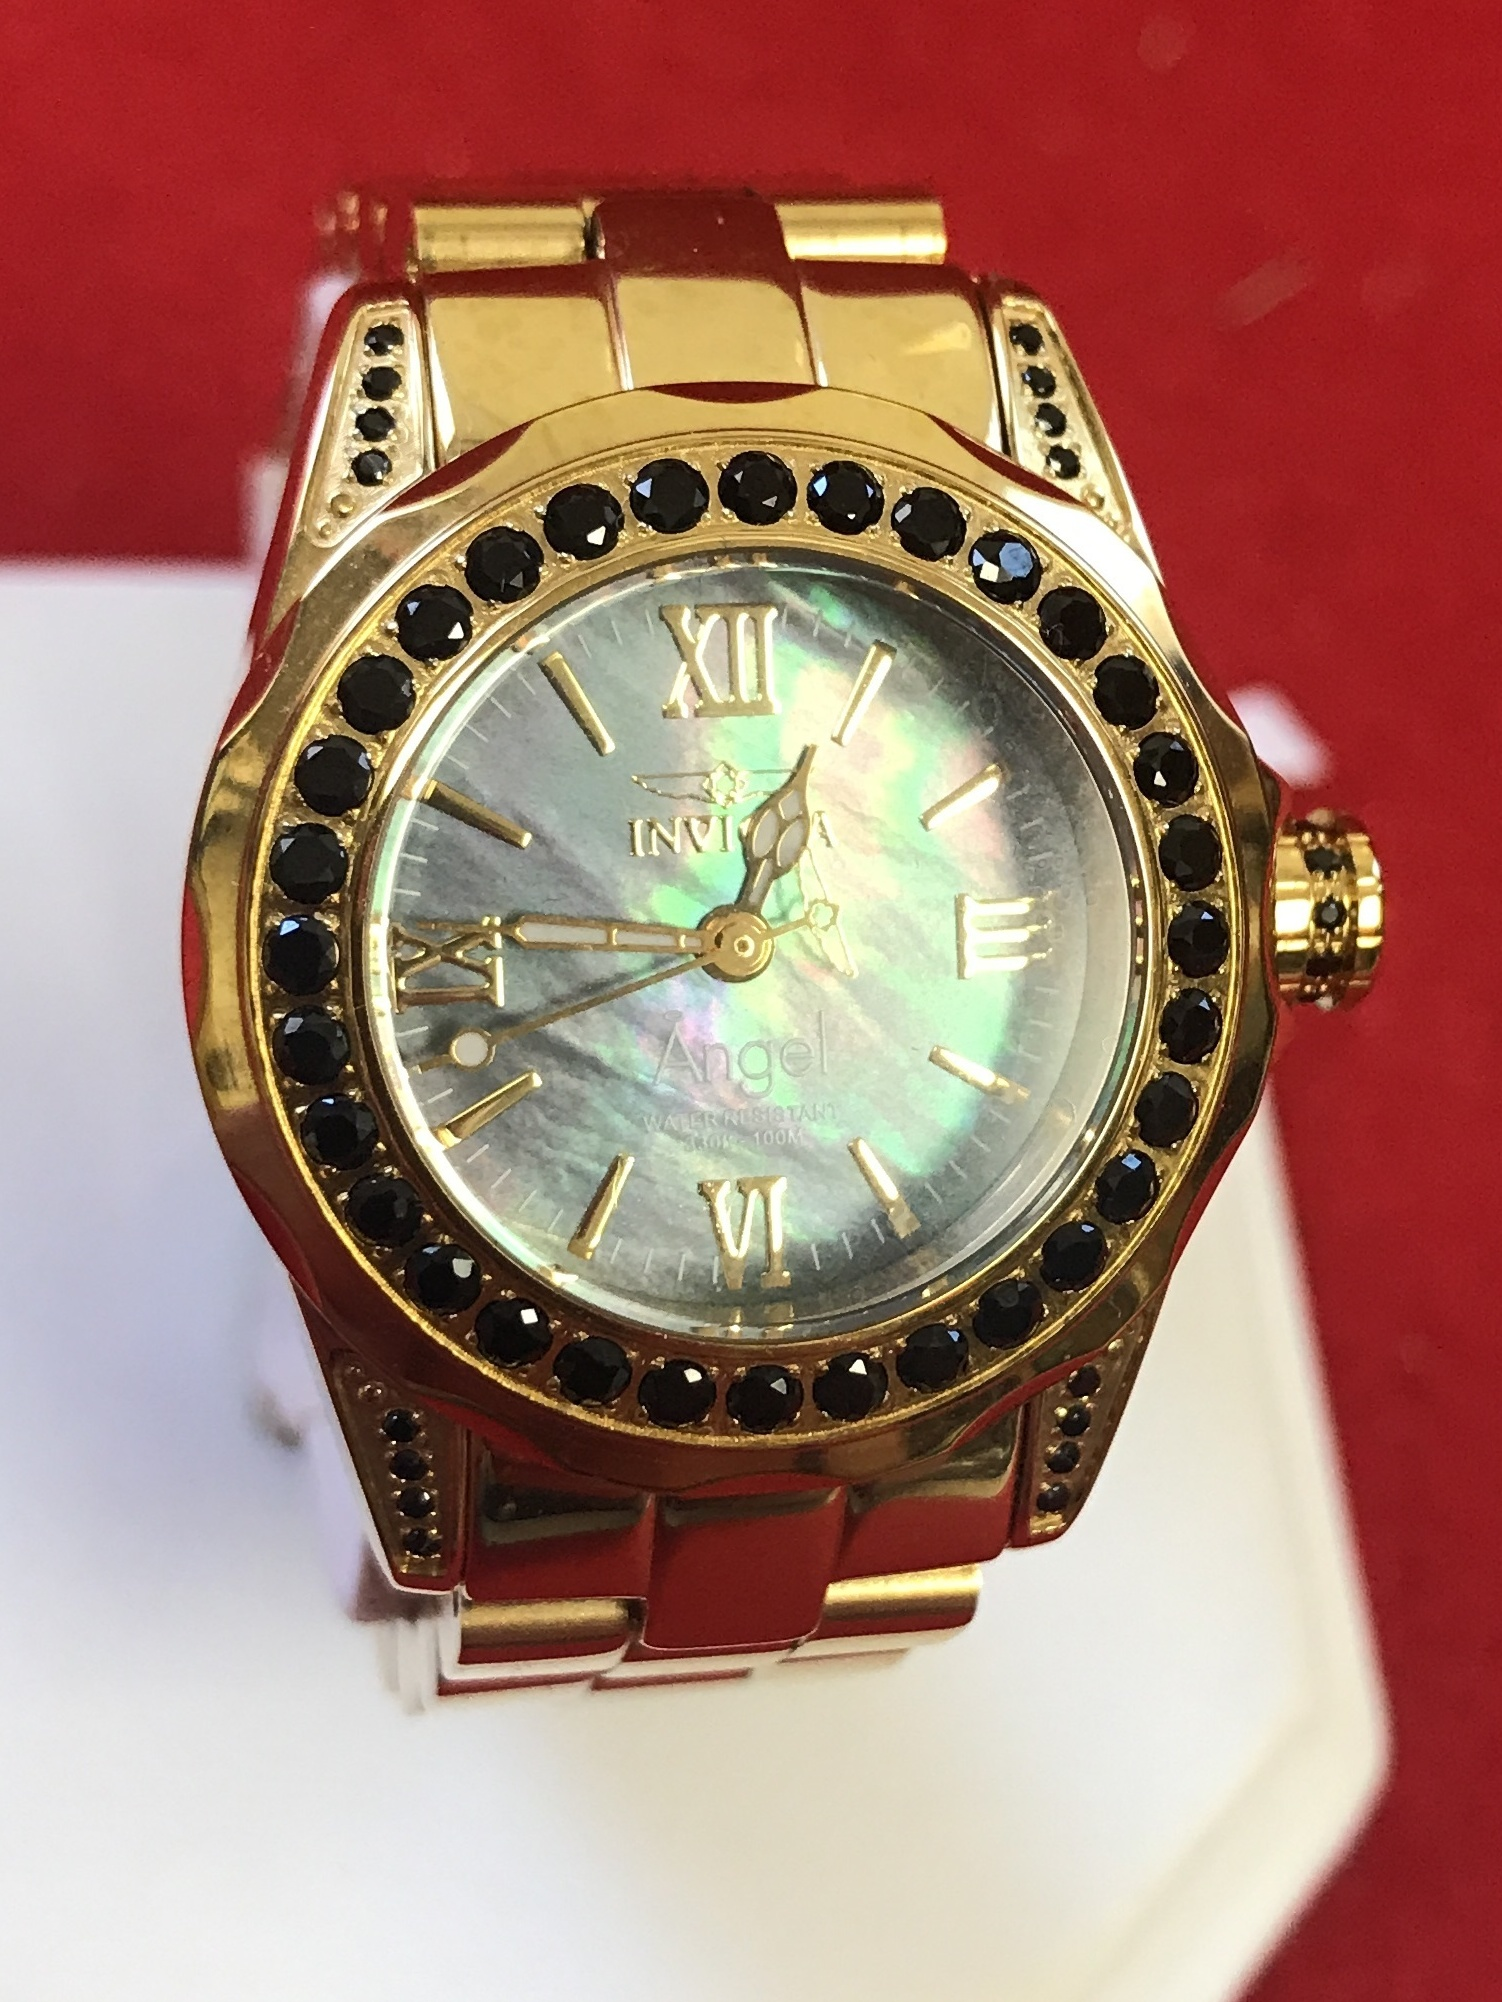 INVICTA - ANGEL 15054 - WOMEN'S WATCH - MOTHER OF PEARL FACE